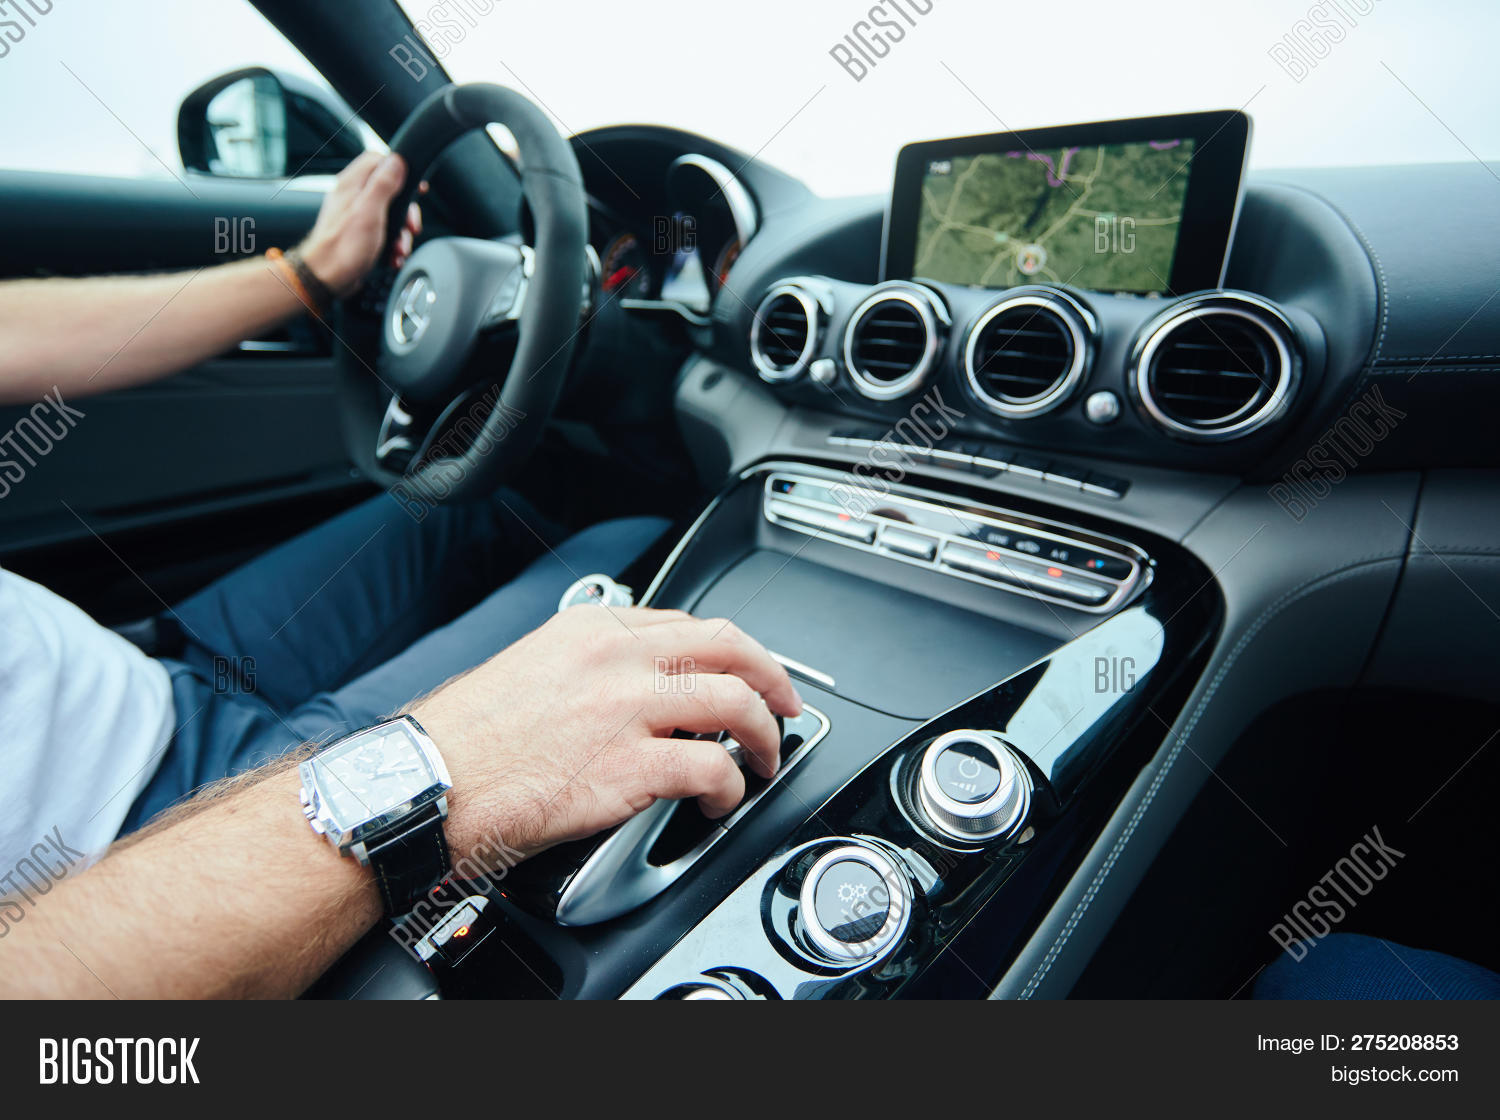 Hand On Automatic Gear Image & Photo (Free Trial) | Bigstock